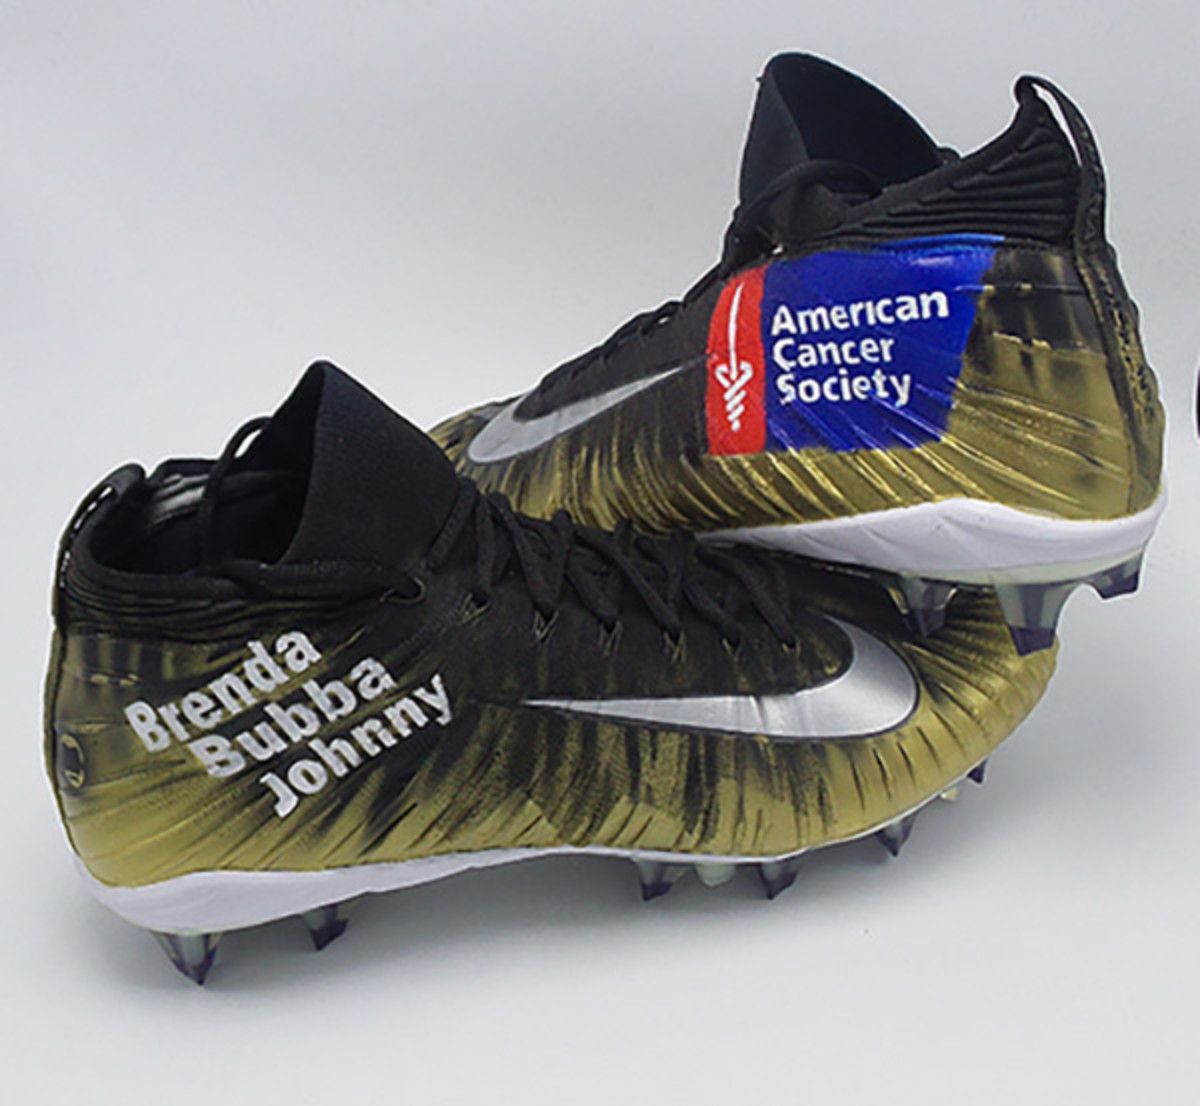 The cleats Henry will wear on Sunday.